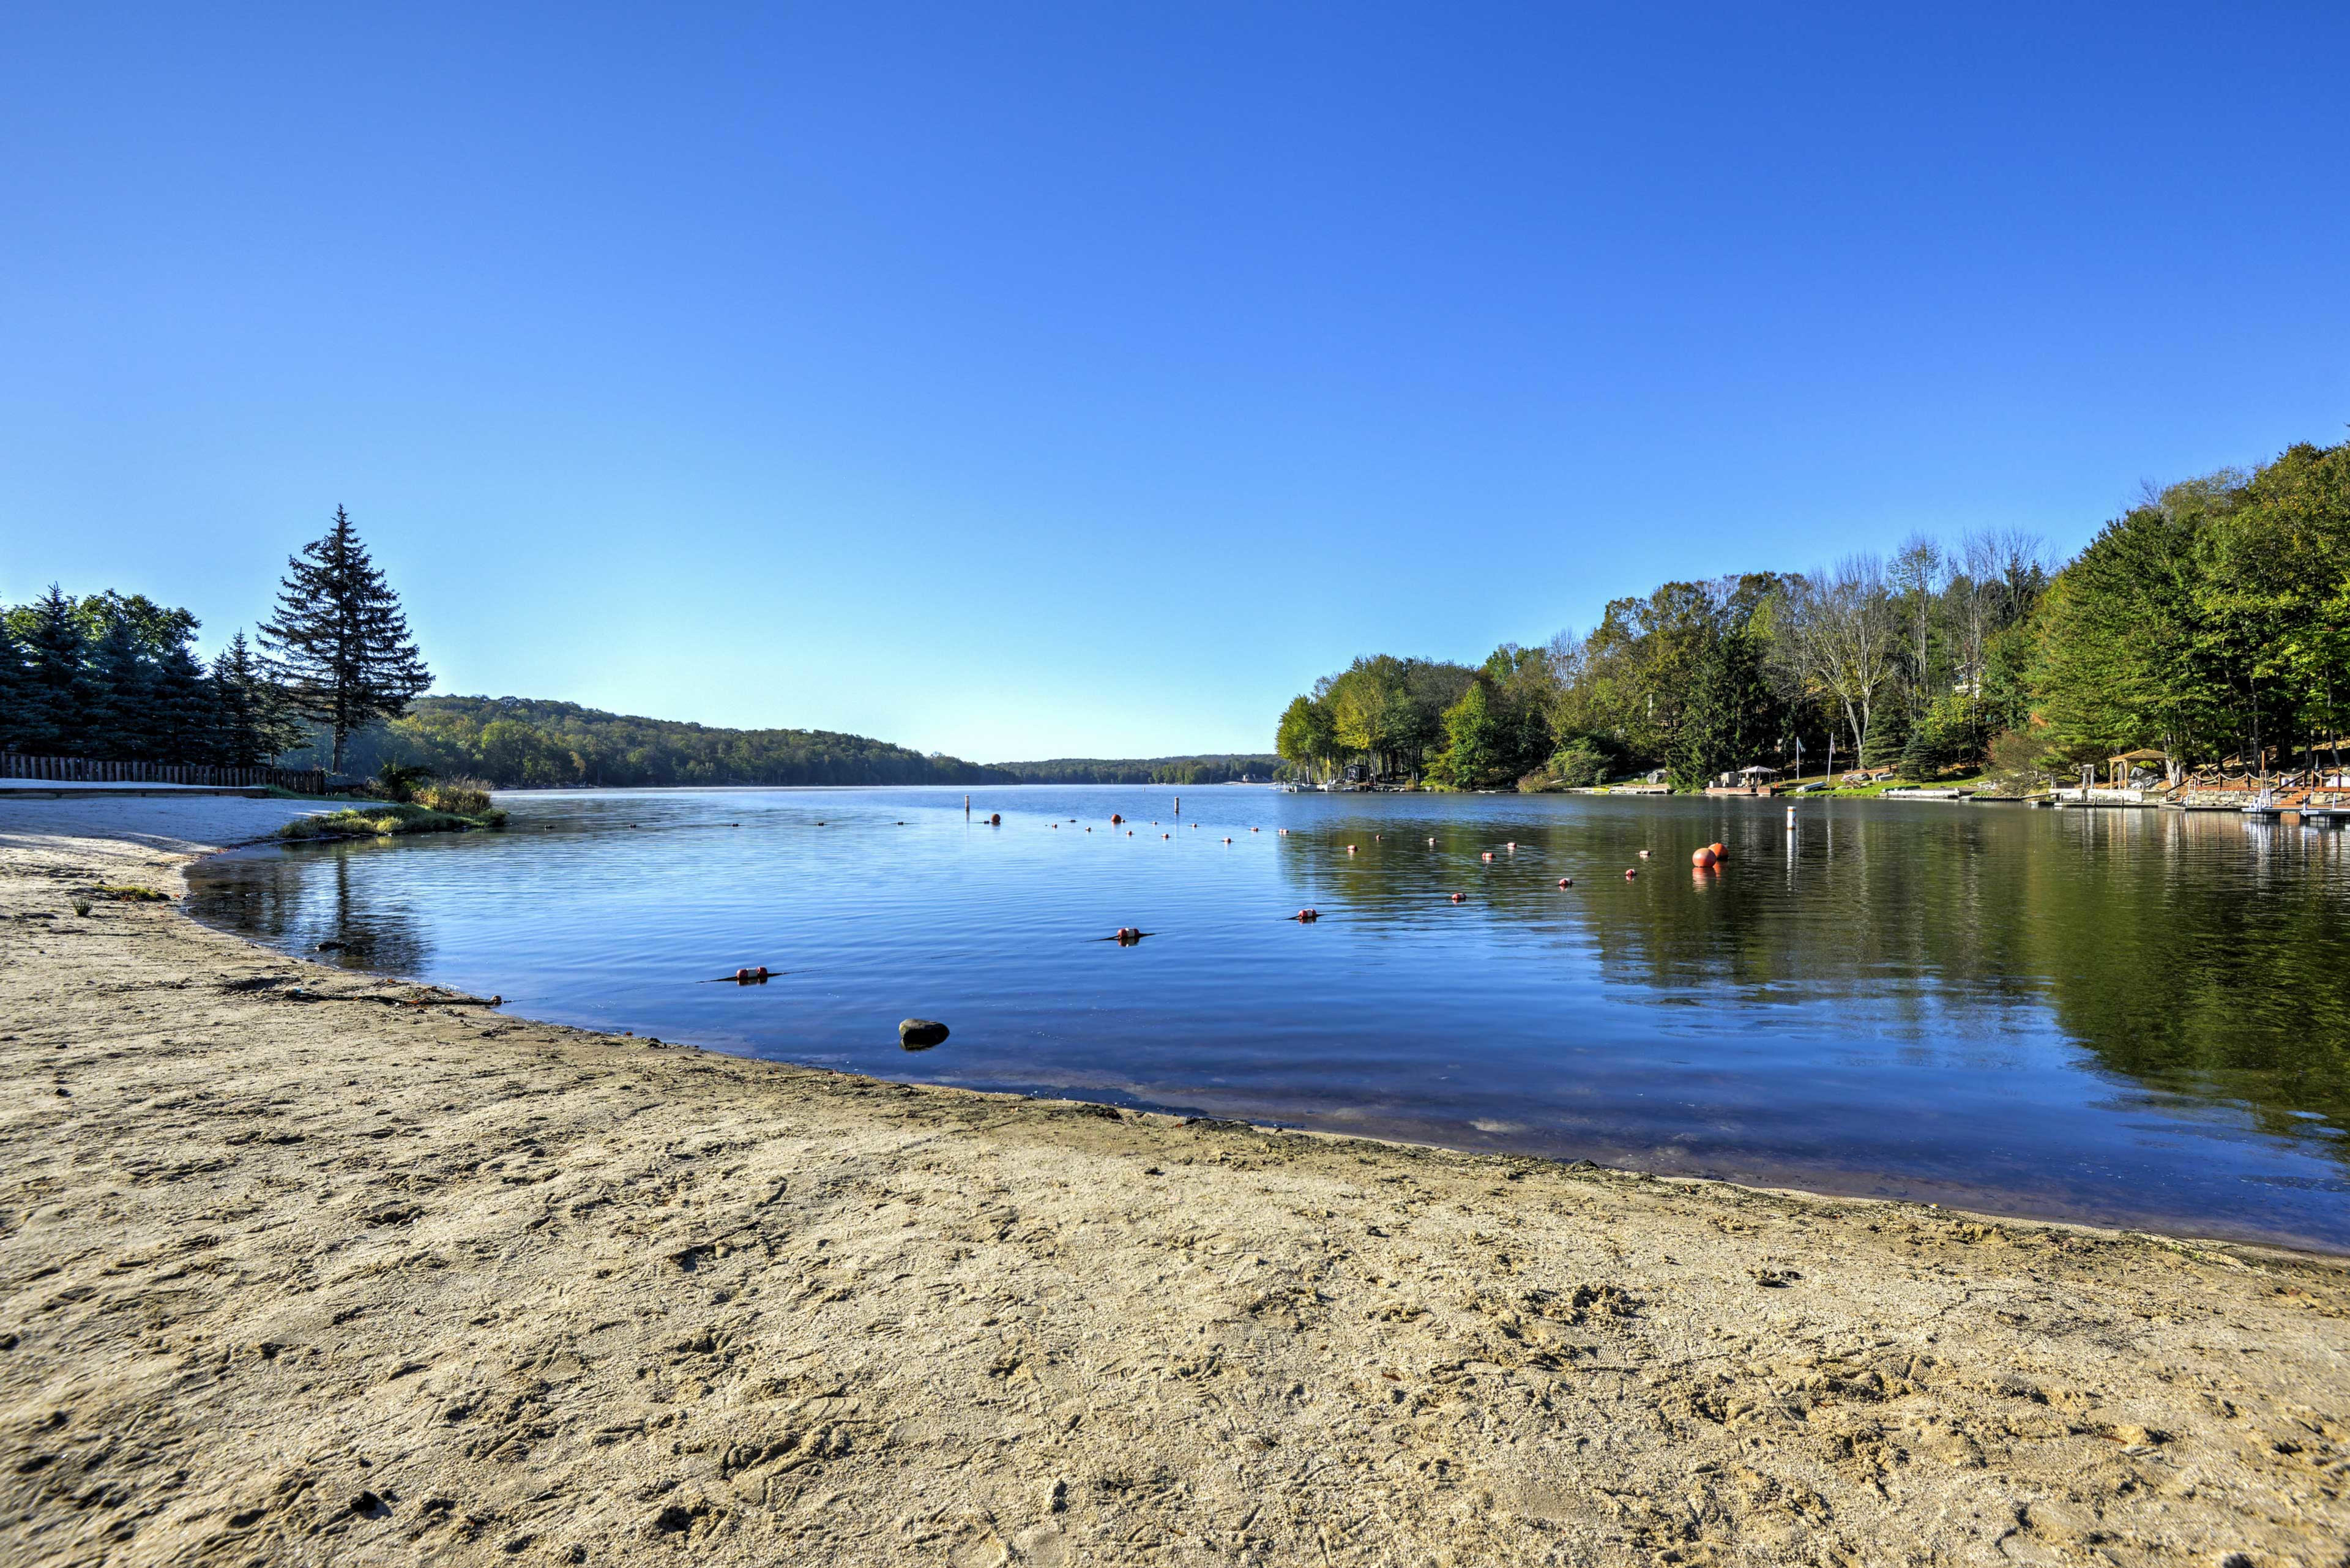 Once the snow melts, you'll love spending lazy days by the lake!